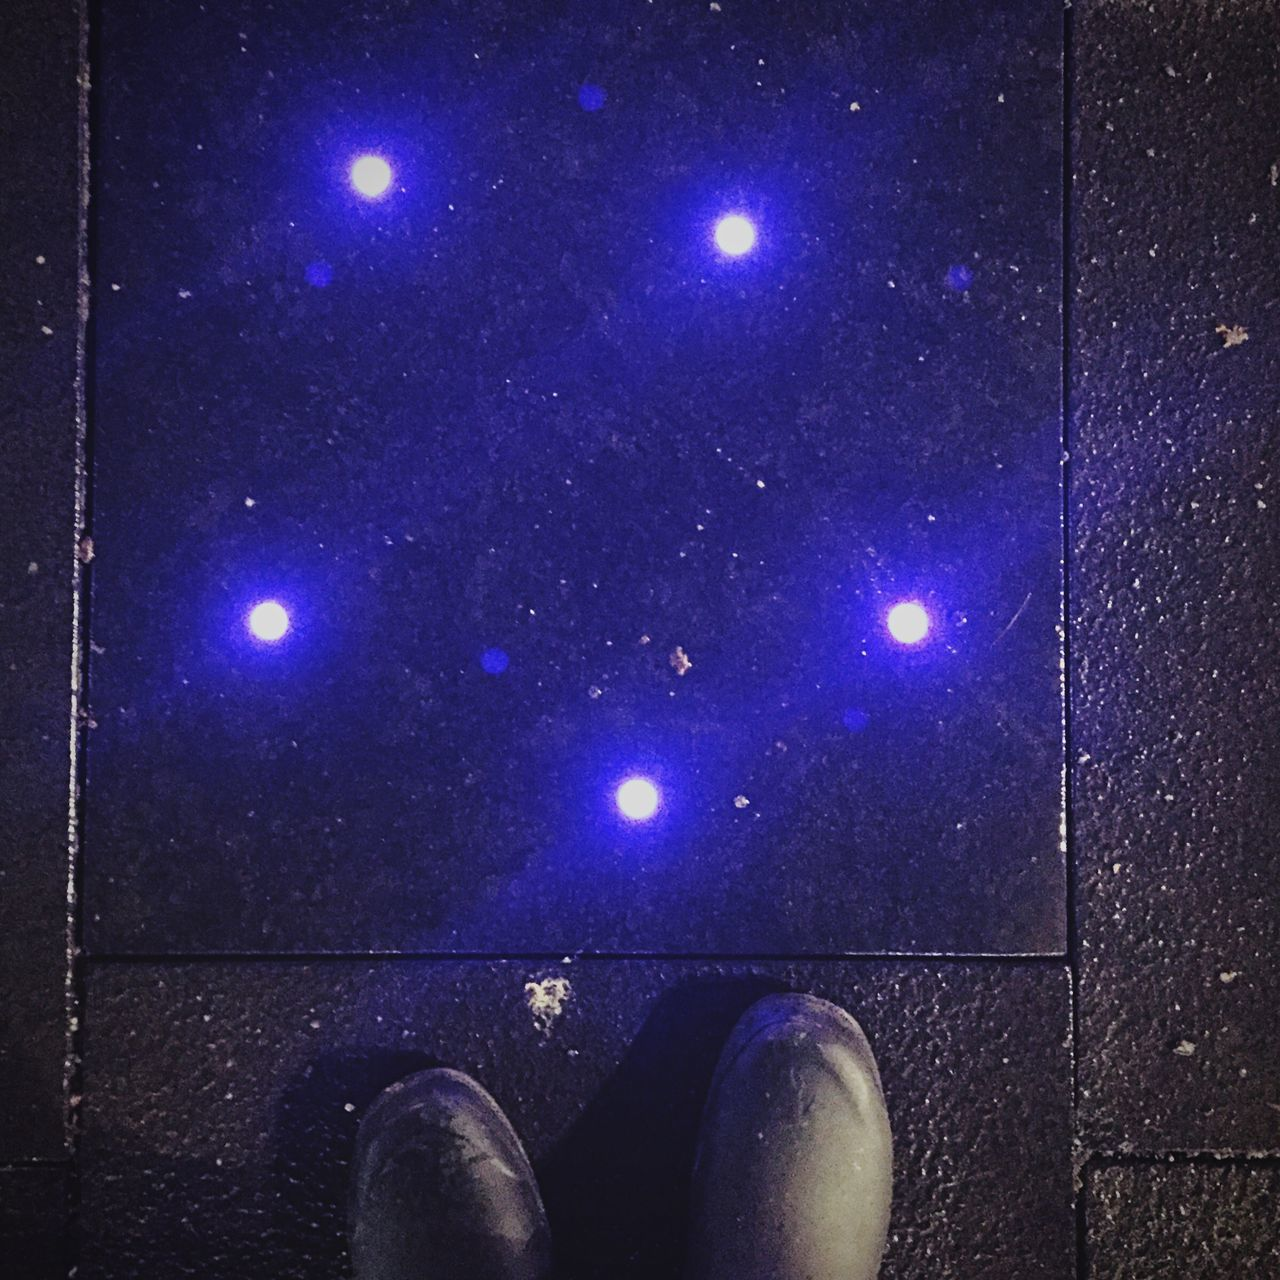 night, low section, illuminated, real people, blue, shoe, human leg, one person, outdoors, human body part, standing, close-up, star - space, astronomy